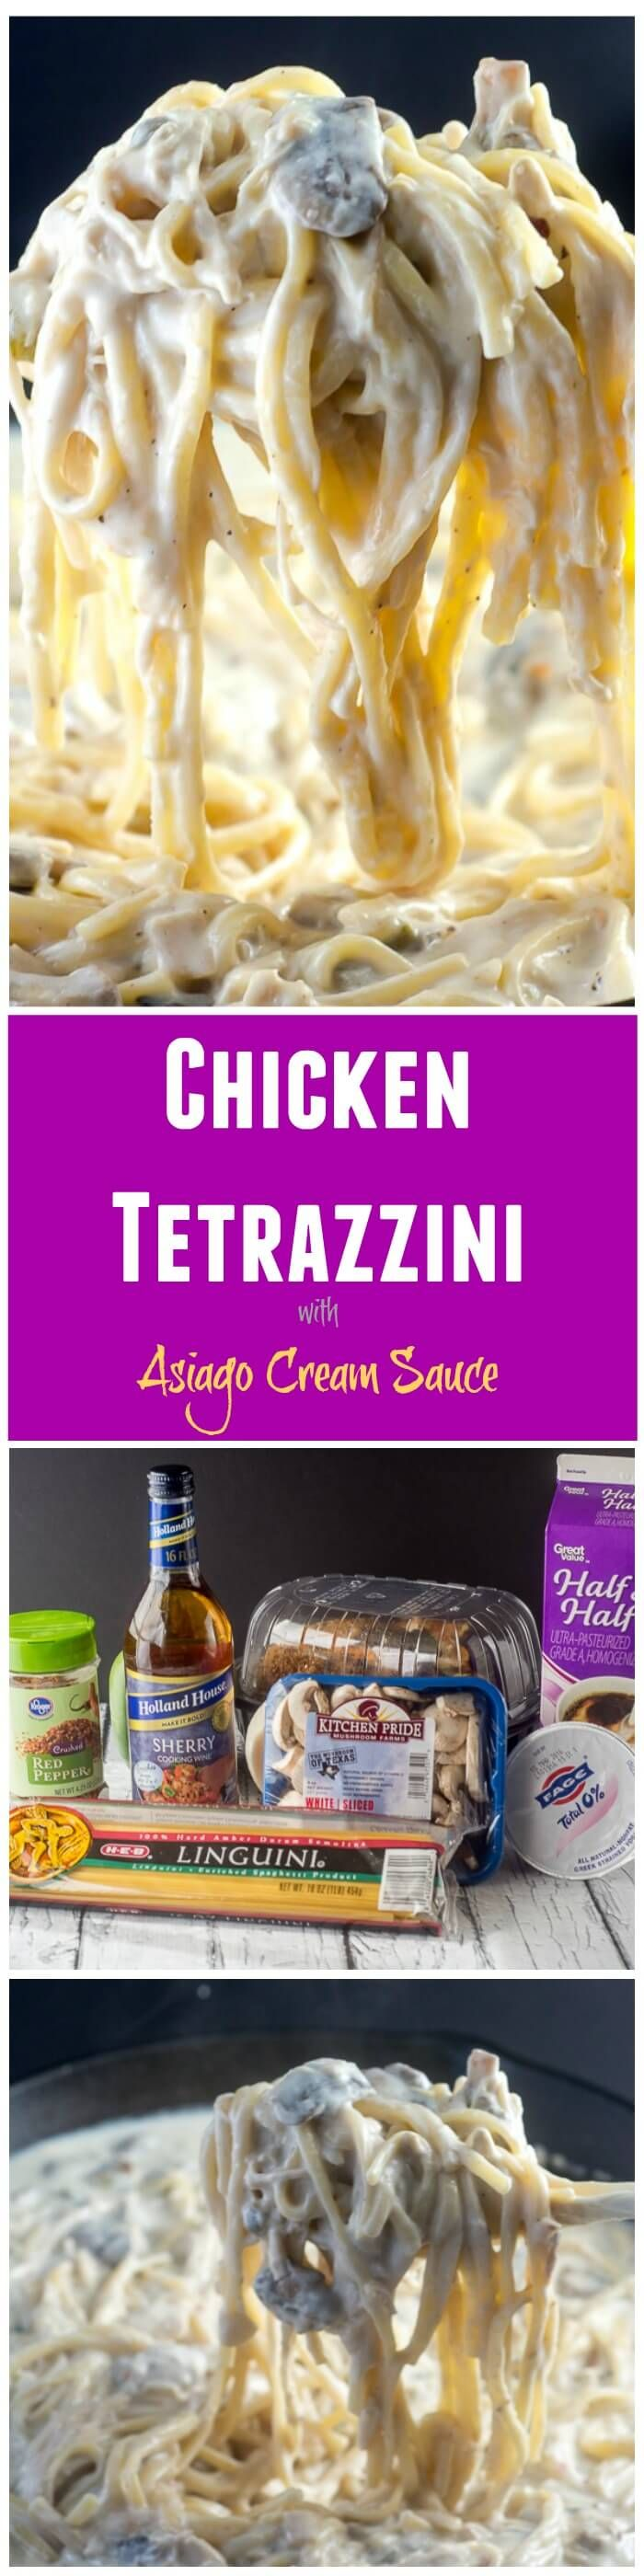 This Chicken Tetrazzini, with chicken (or turkey) in an asiago cream sauce with pasta, makes a delicious casserole, and is a great way to use up leftover chicken or turkey after a holiday. via @flavormosaic